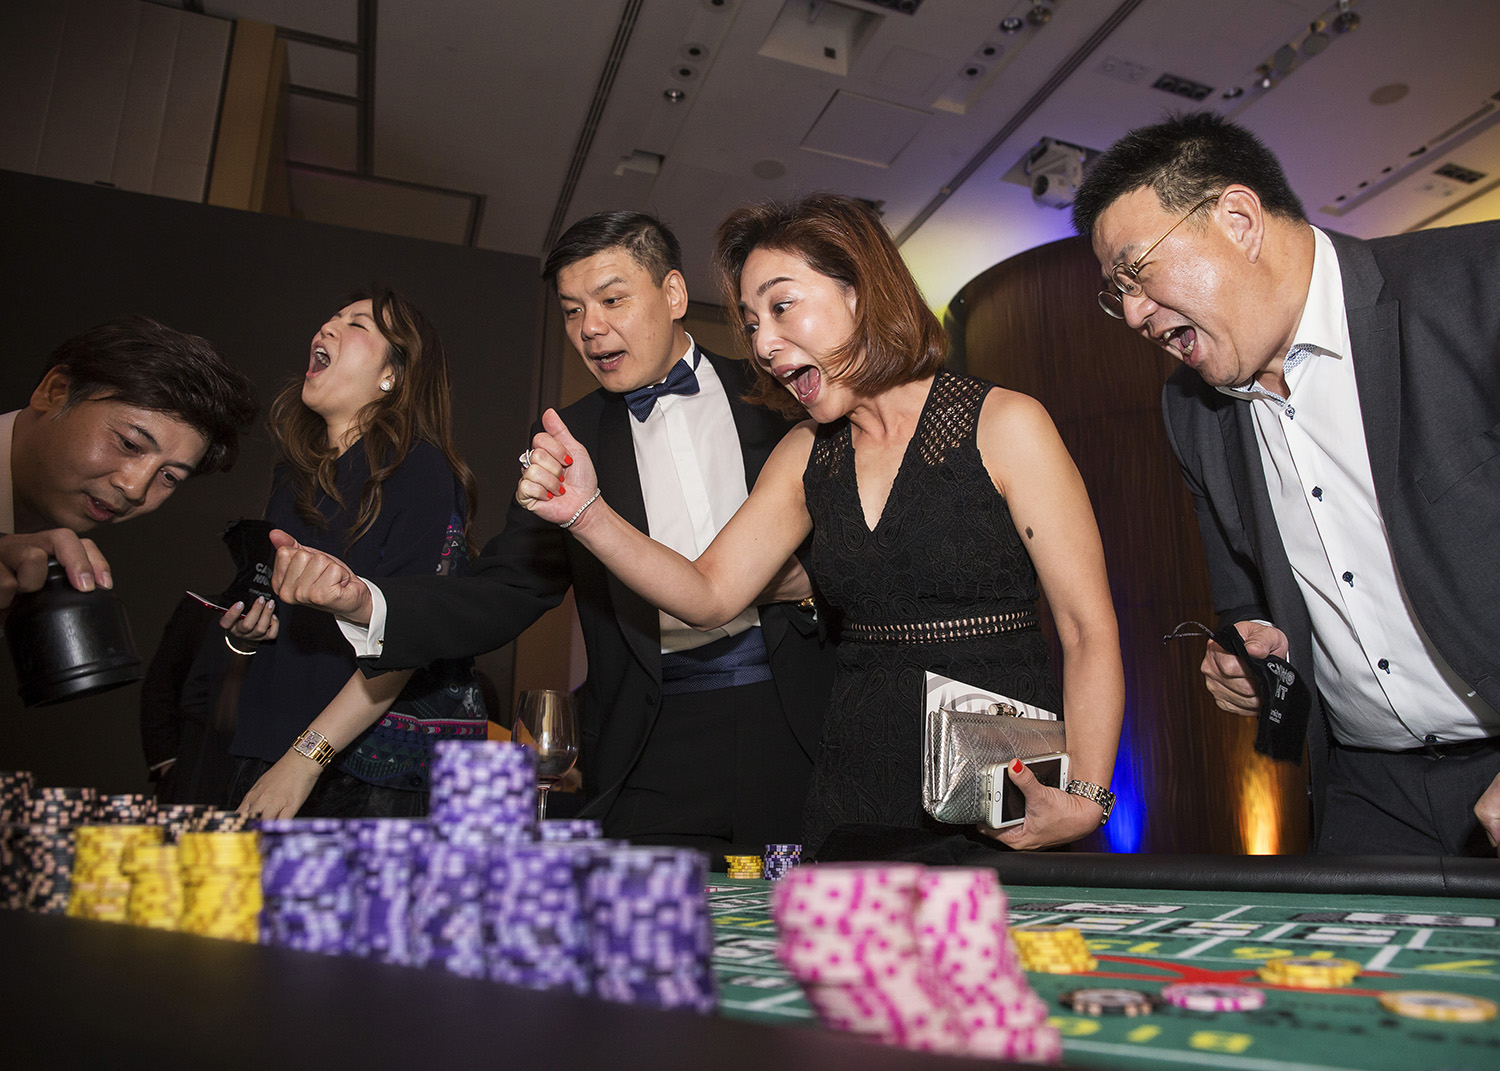 We provide casino game rental services in Hong Kong. Casino games are fun for event entertainment. We provide a wide variety of casino gaming tables, casino dealers and casino chips.